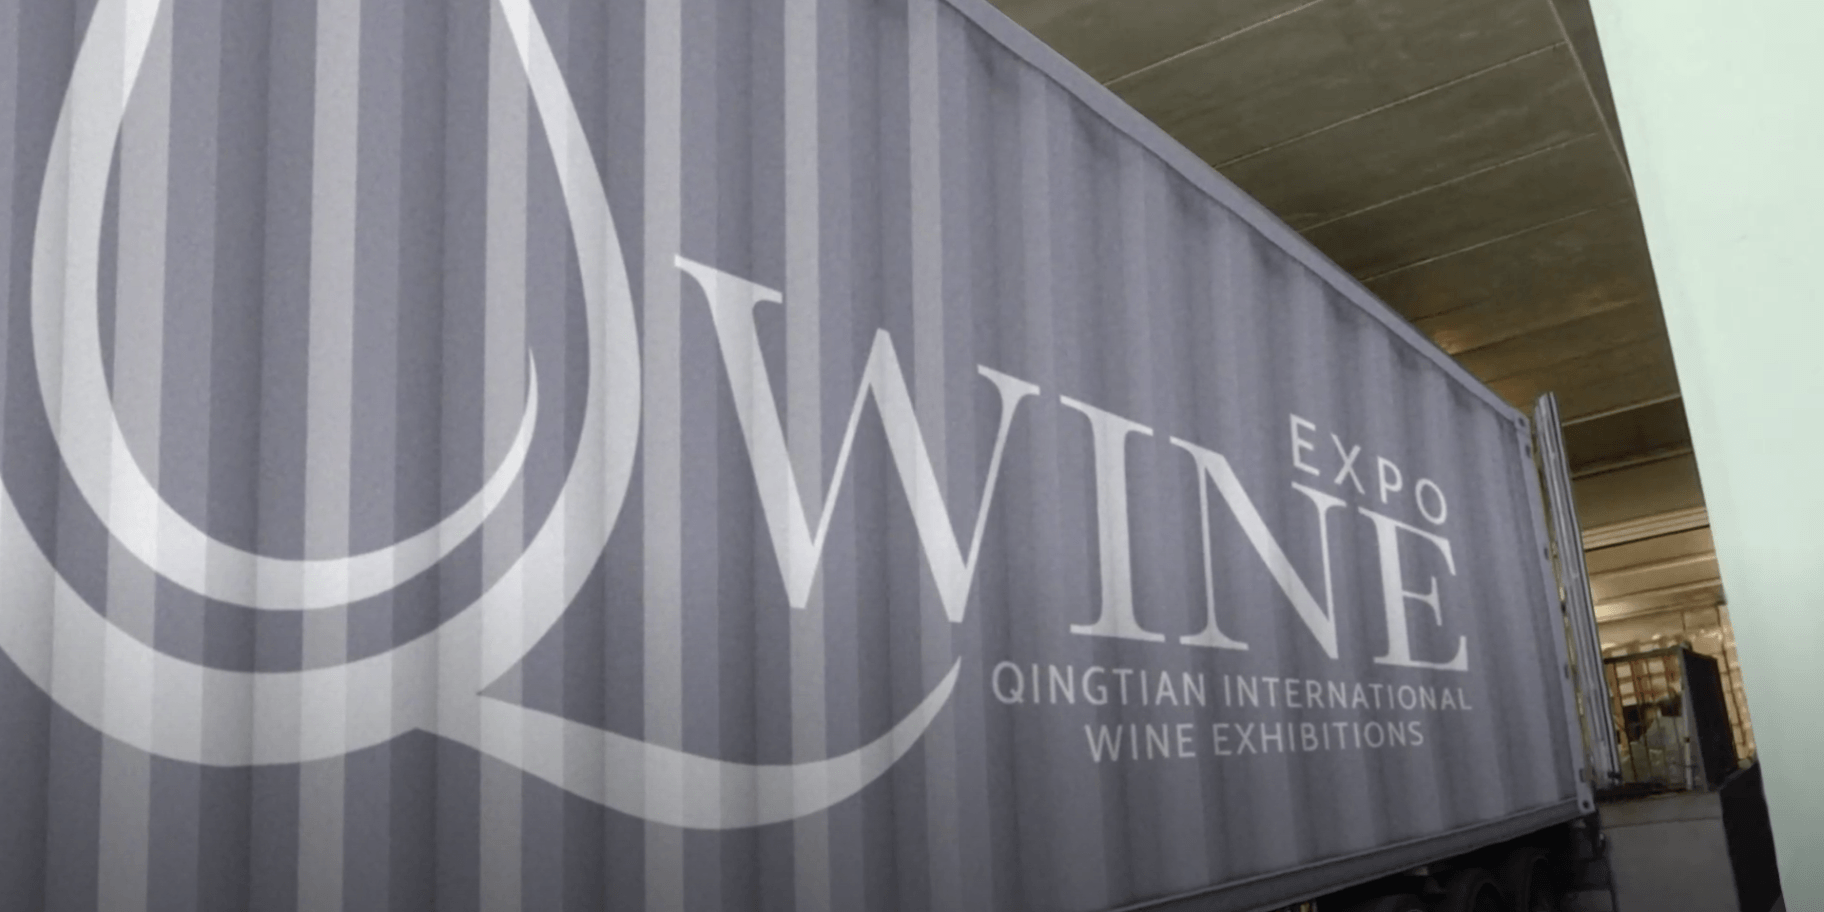 container qwine